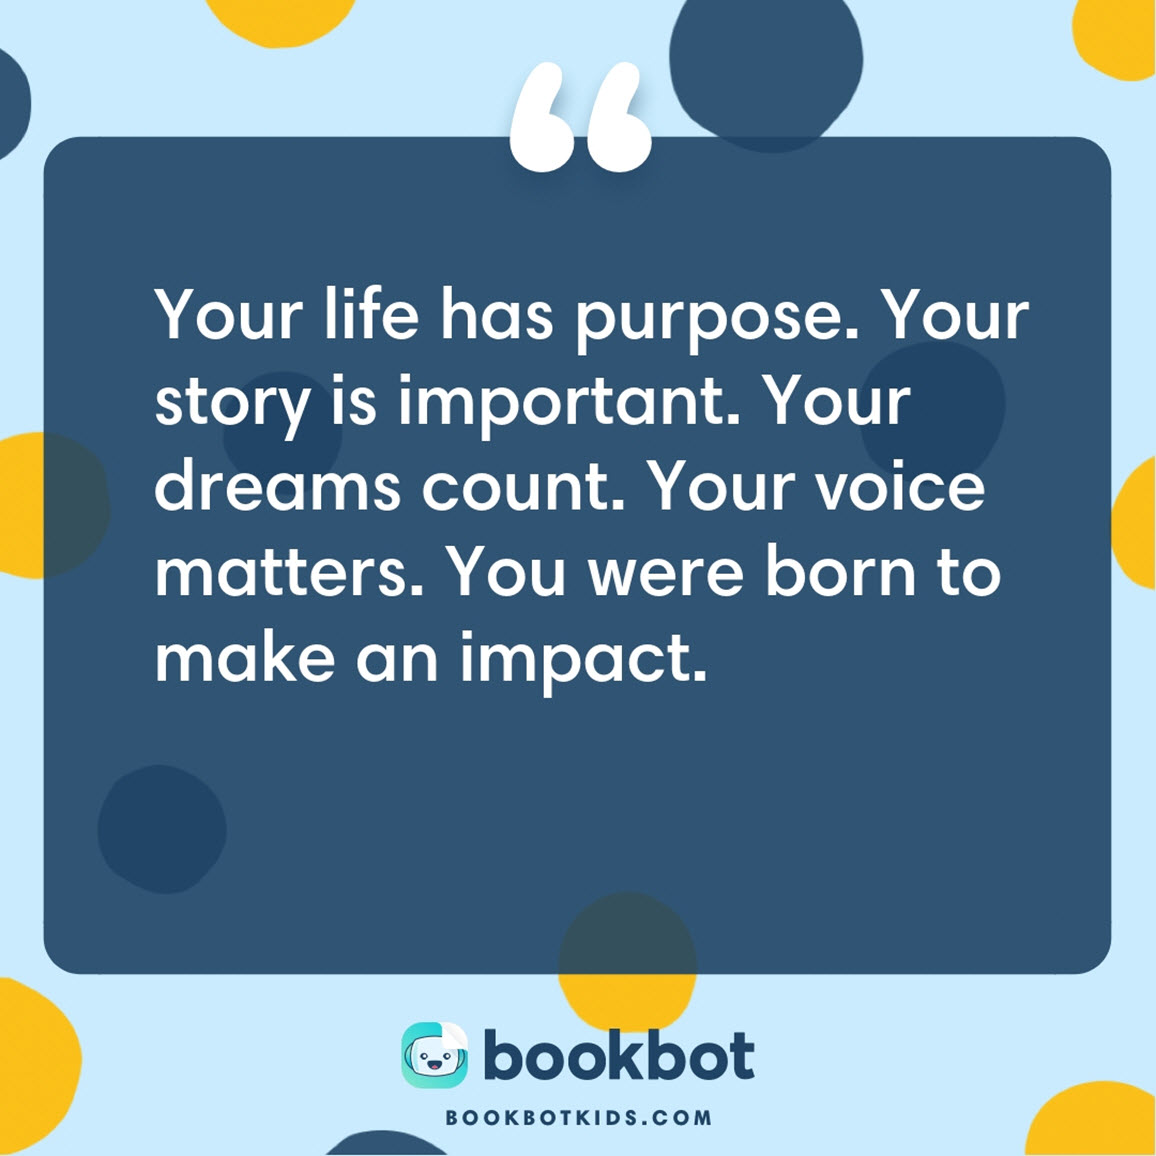 Your life has purpose. Your story is important. Your dreams count. Your voice matters. You were born to make an impact.